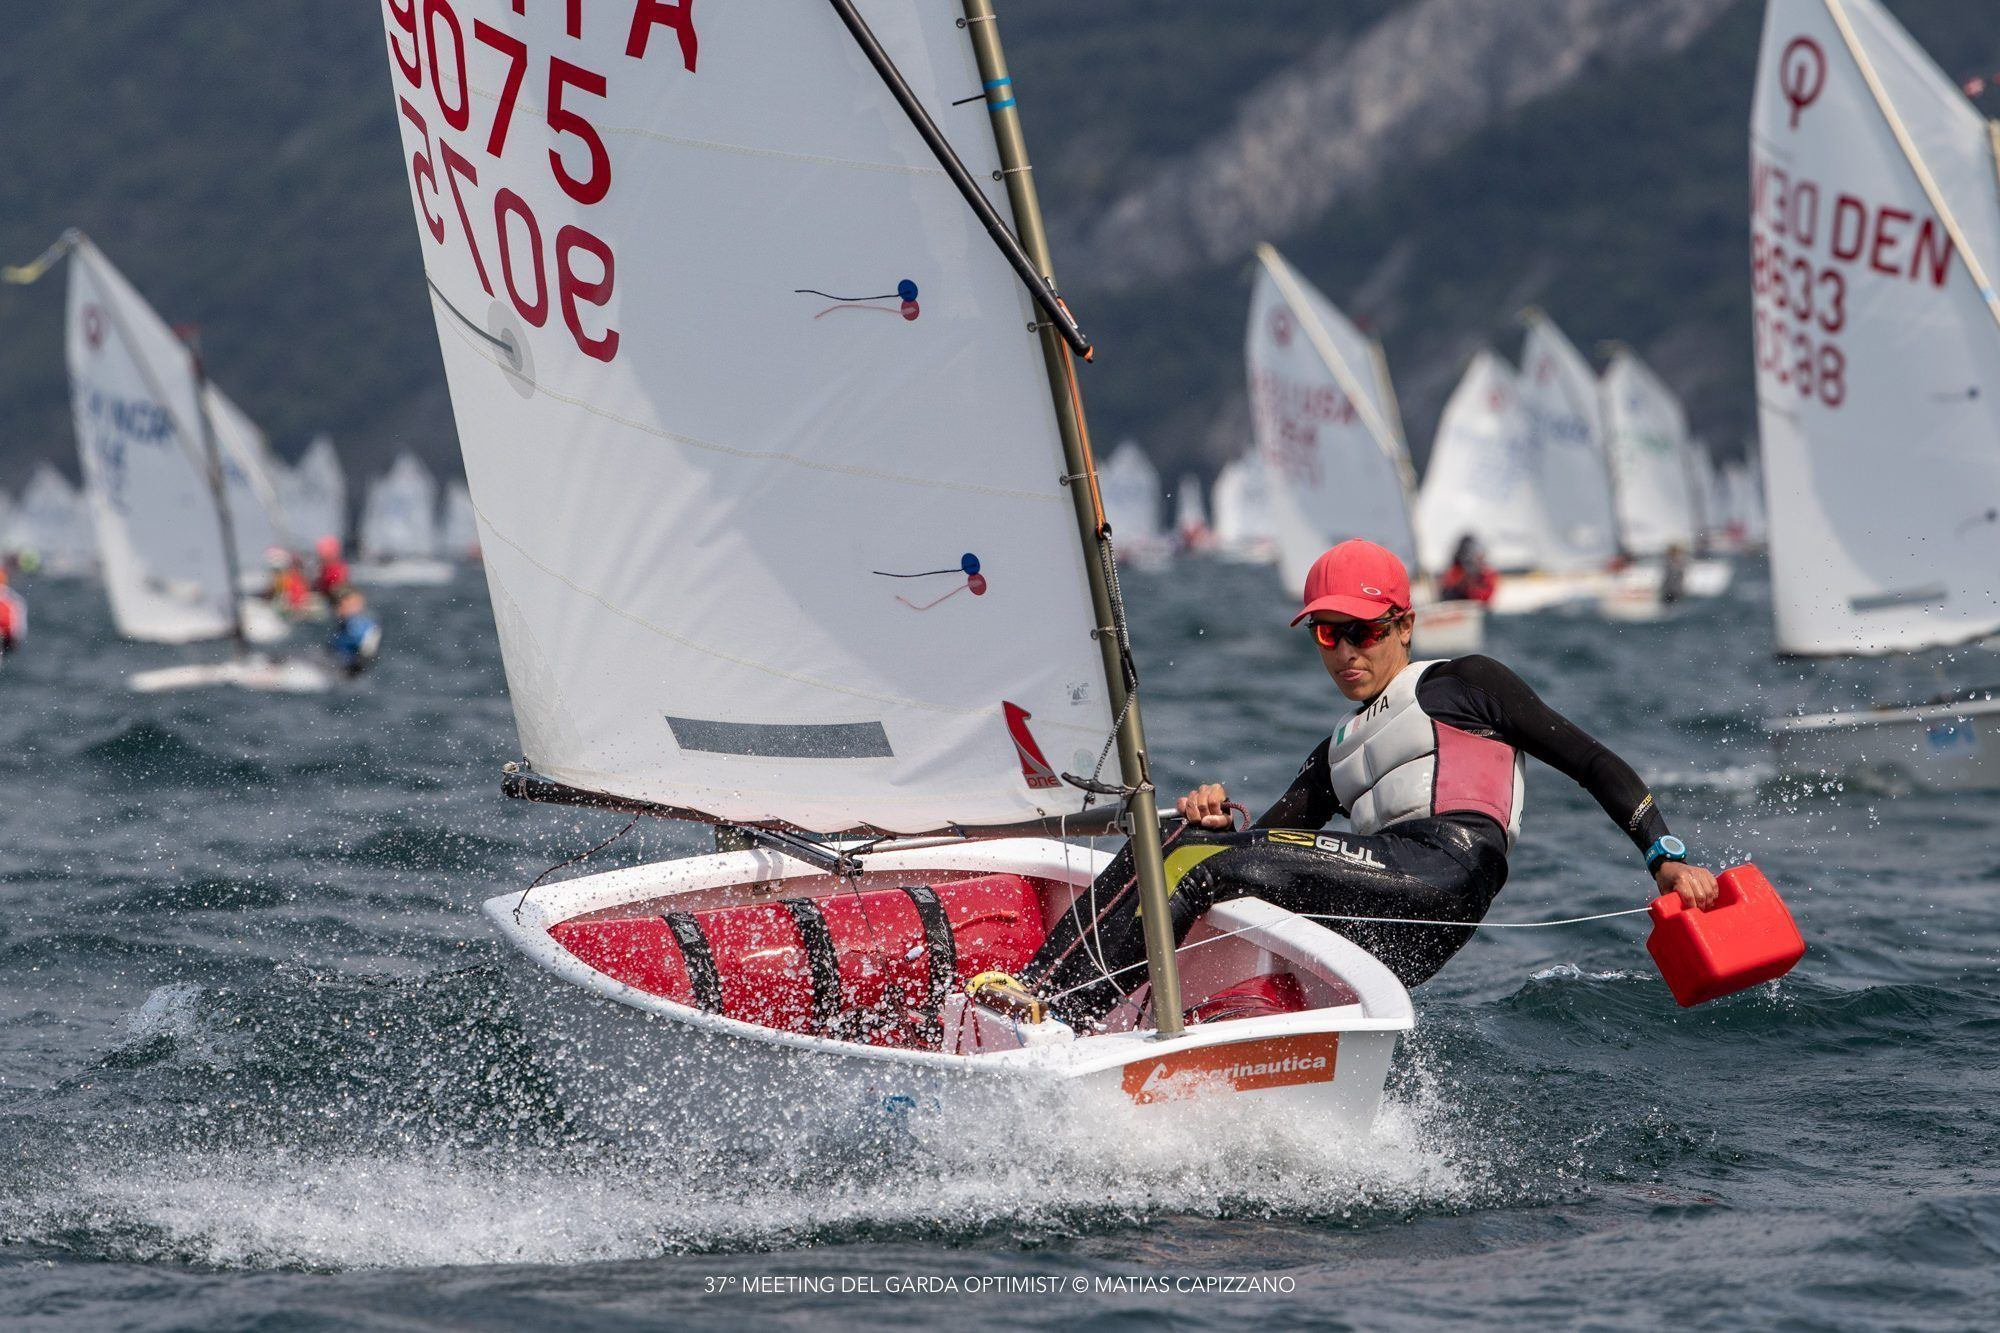 37° MEETING DEL GARDA OPTIMIST